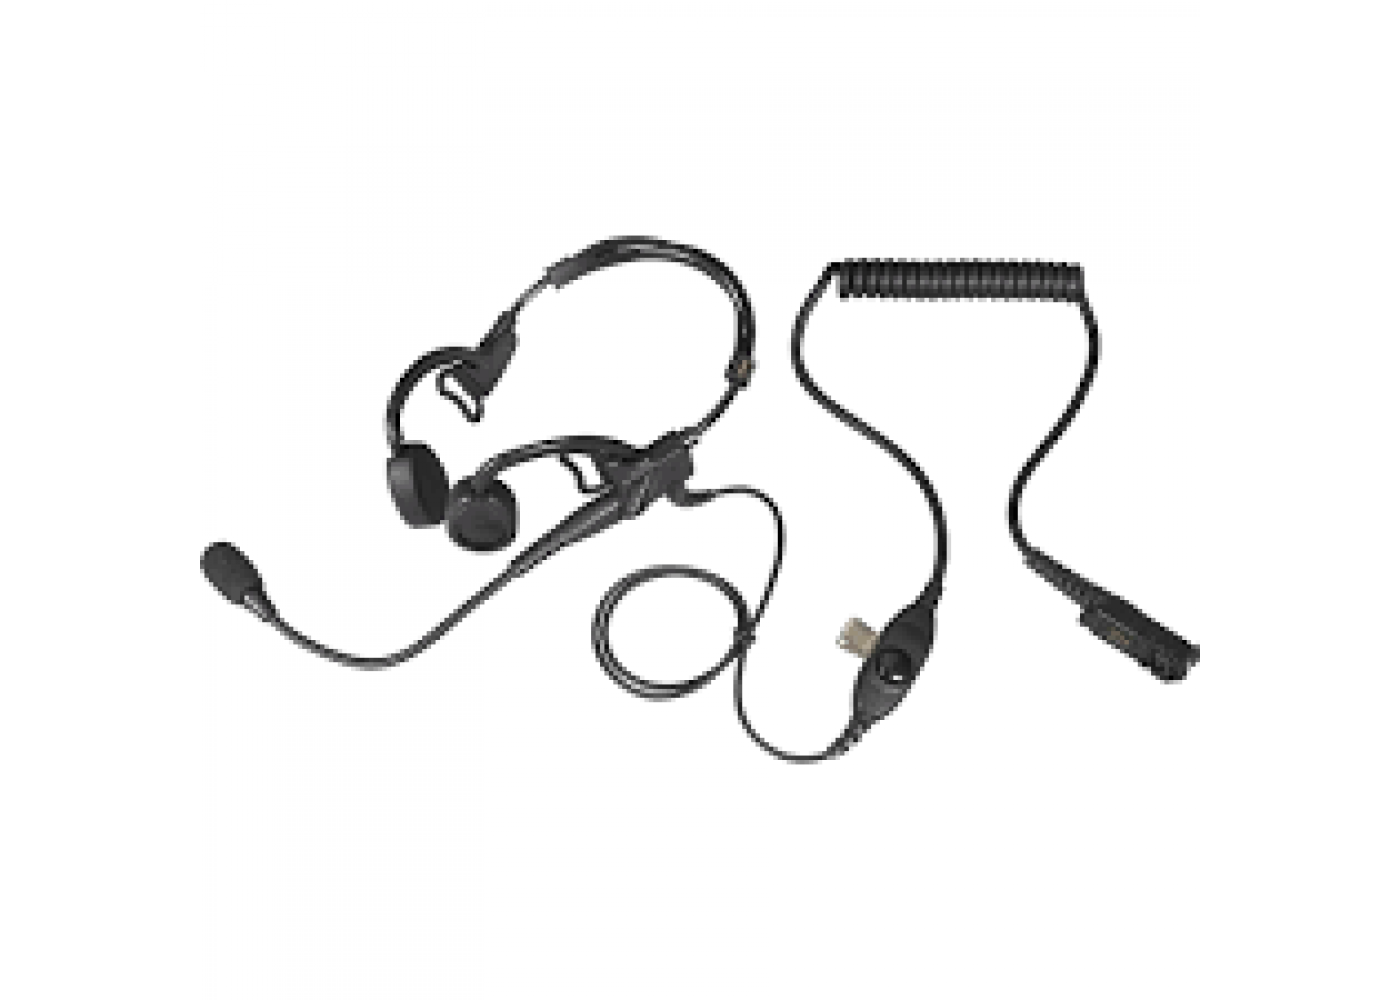 Dvrs besides Motorola Pmln6759 Temple Transducer Headset Xpr3300 3500 besides Rln5313b Receive Only Surveillance Kit Black  fort Earpiece likewise Rln5313b Receive Only Surveillance Kit Black  fort Earpiece besides Pmln5733 Mag One Earbud With Inline Microphone And Push To Talk. on new motorola fire radios